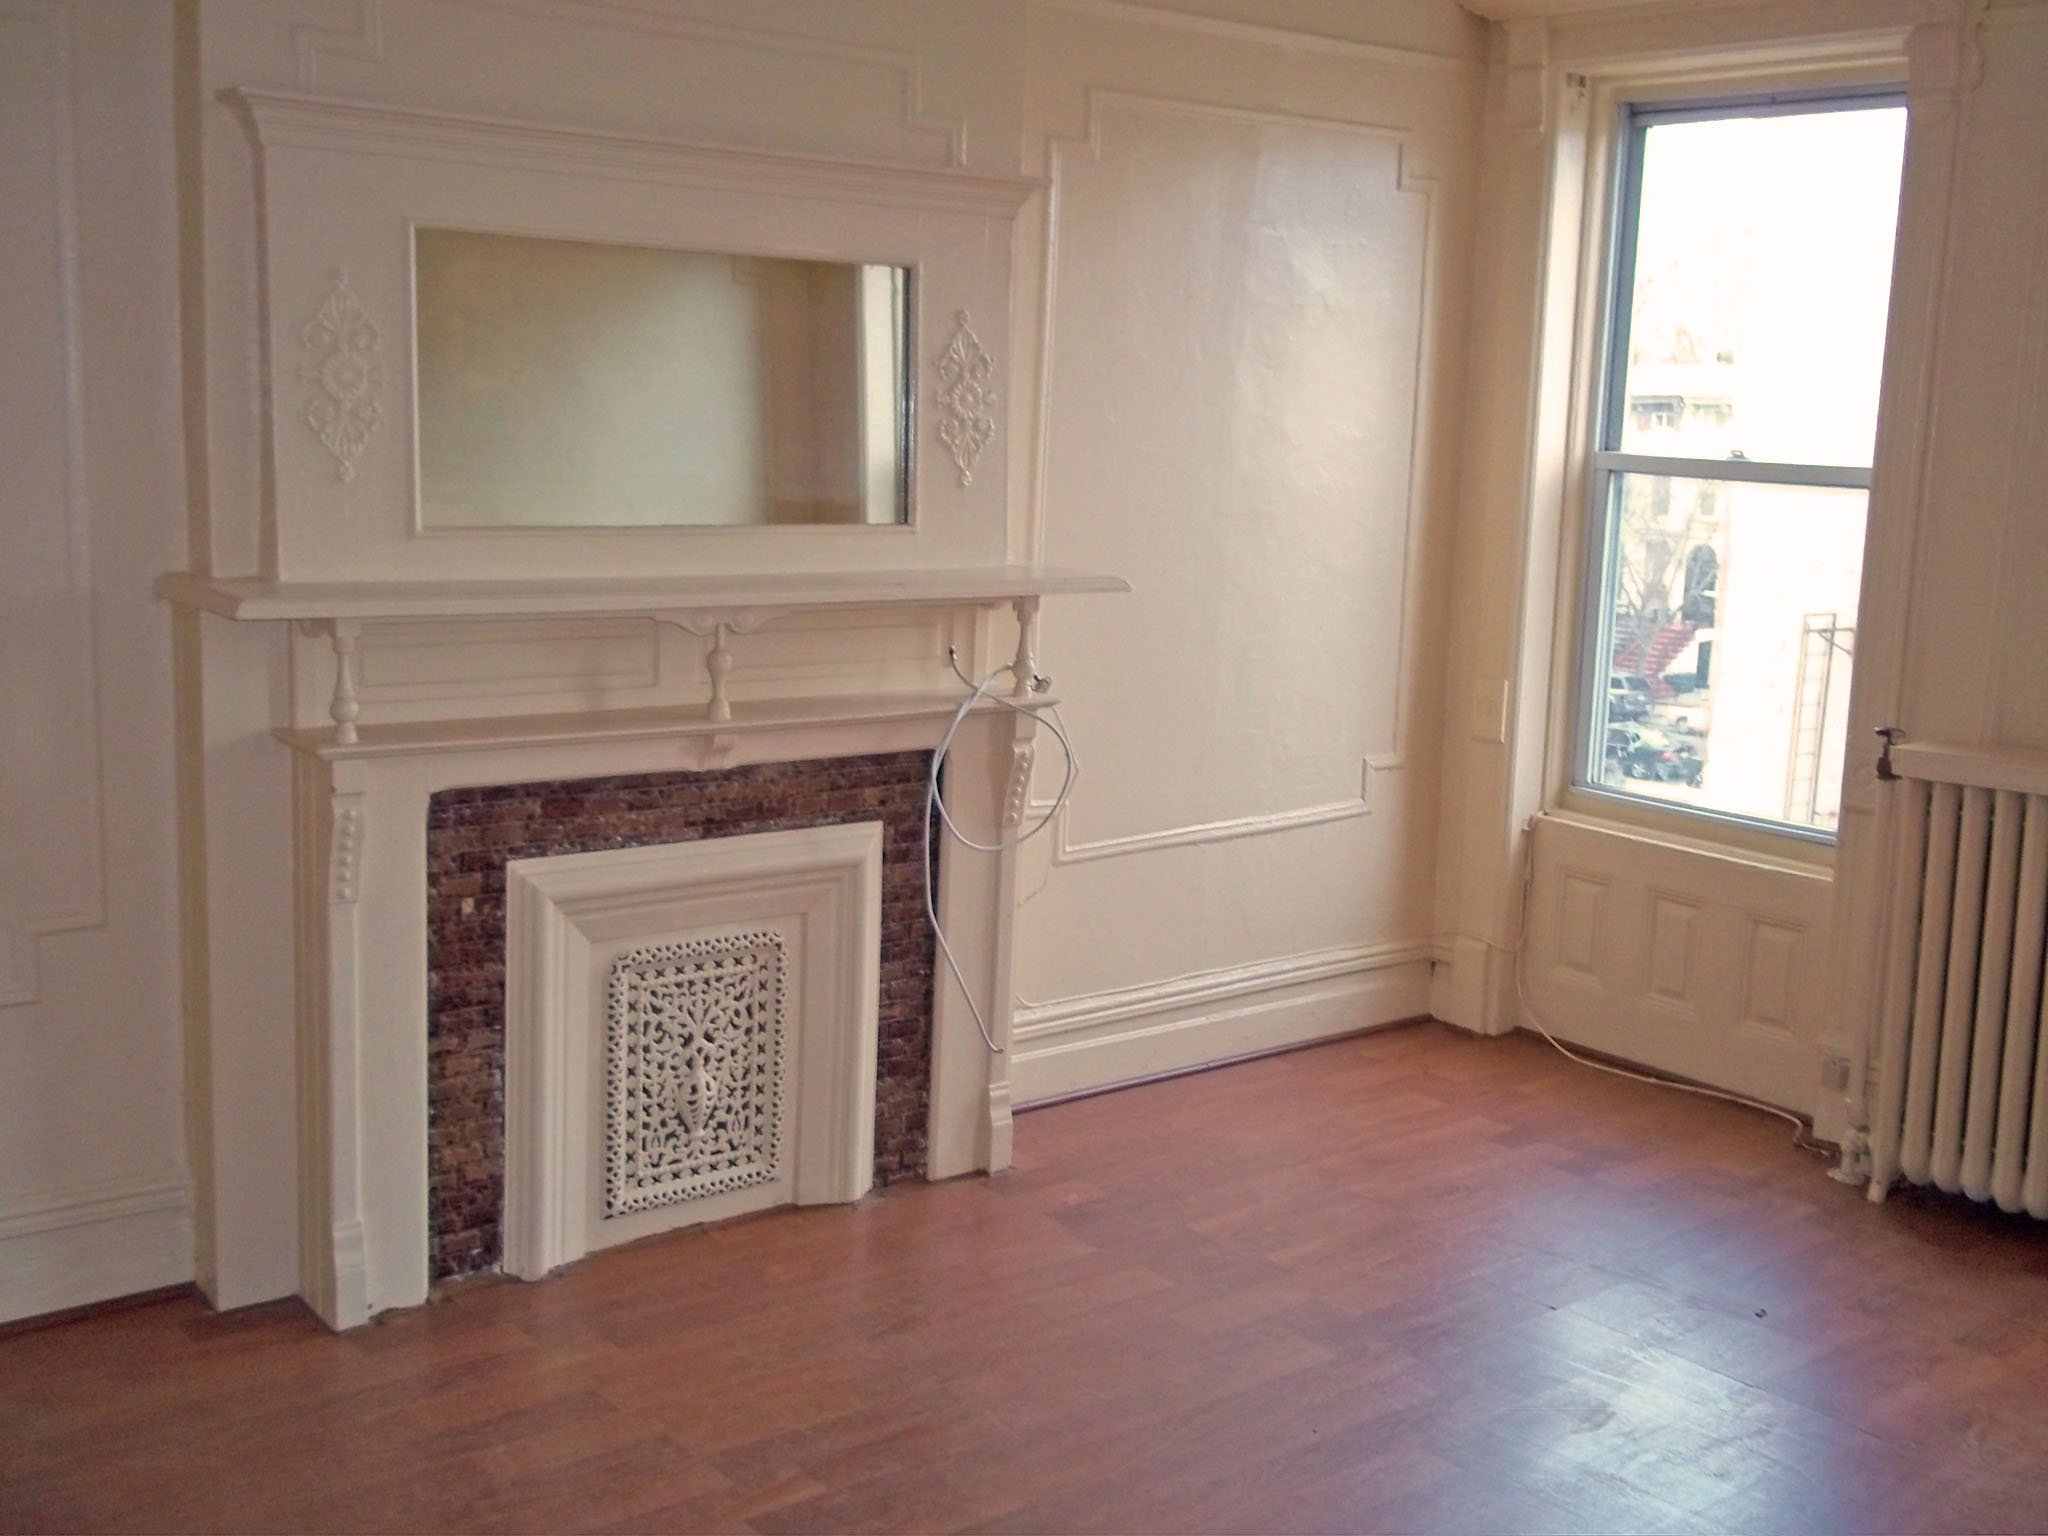 Bedford Stuyvesant 1 Bedroom Apartment For Rent Brooklyn Crg3107